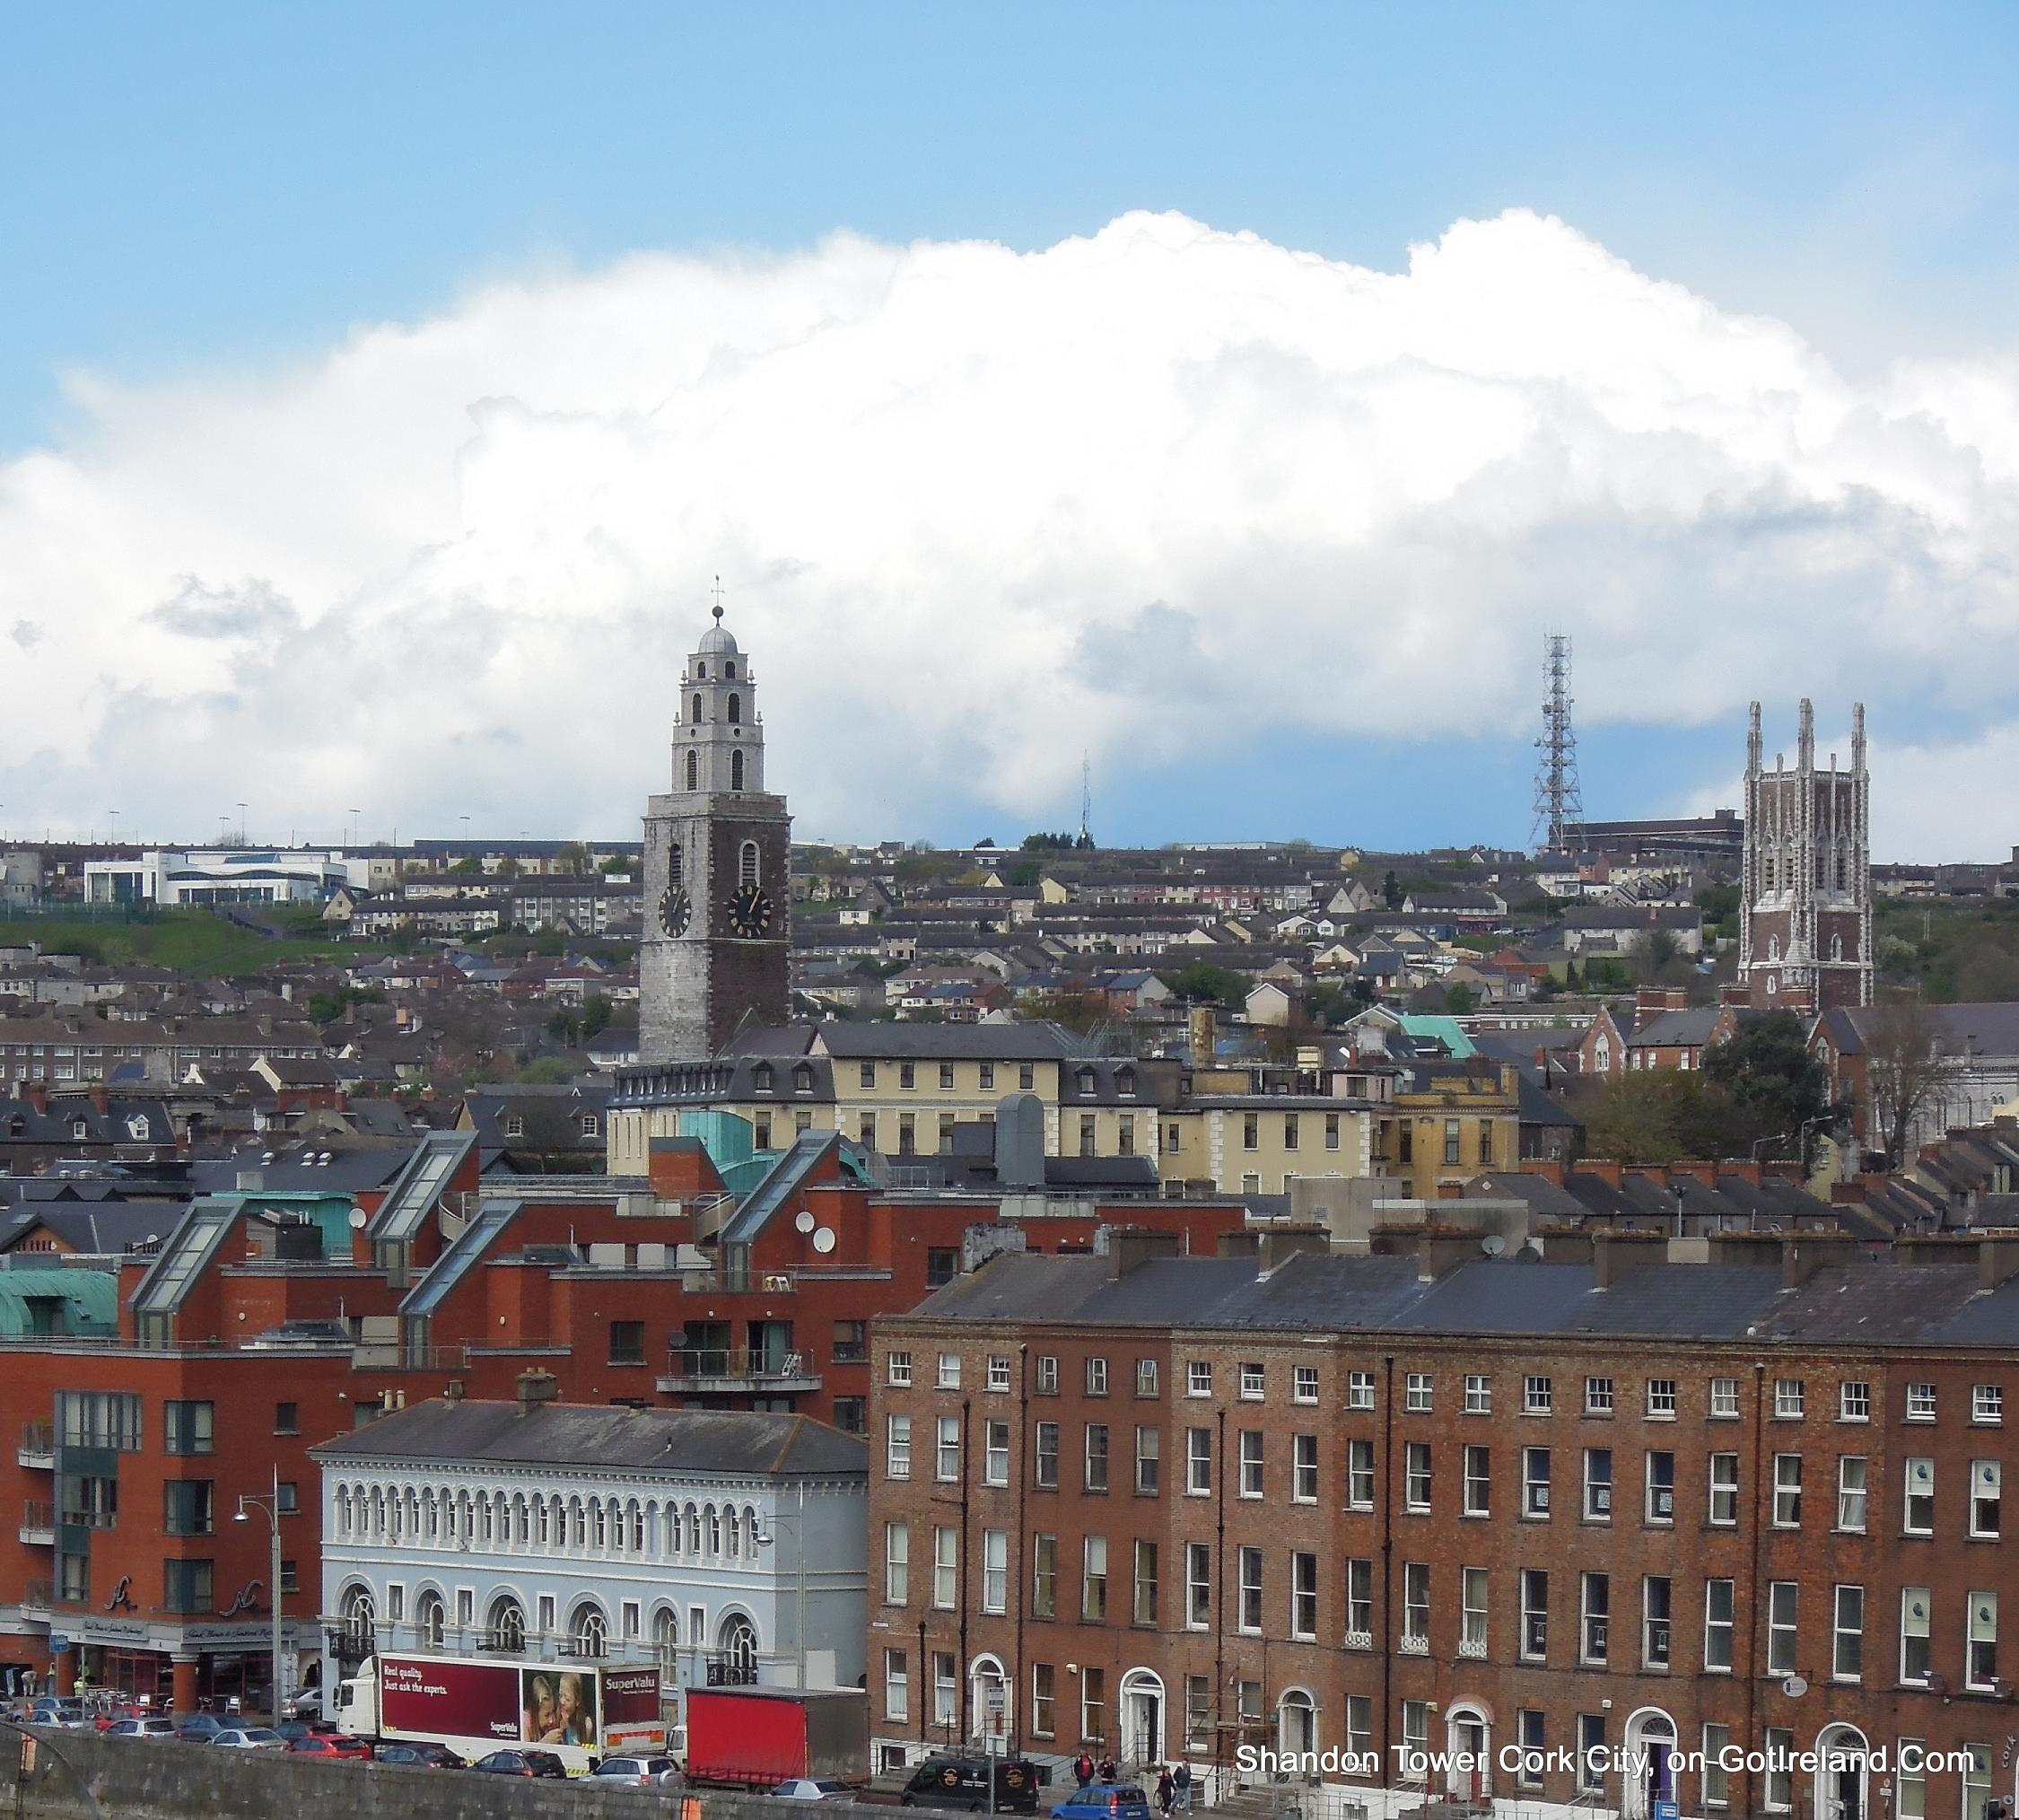 The Shandon Tower – Cork City's famous Four Faced Liar